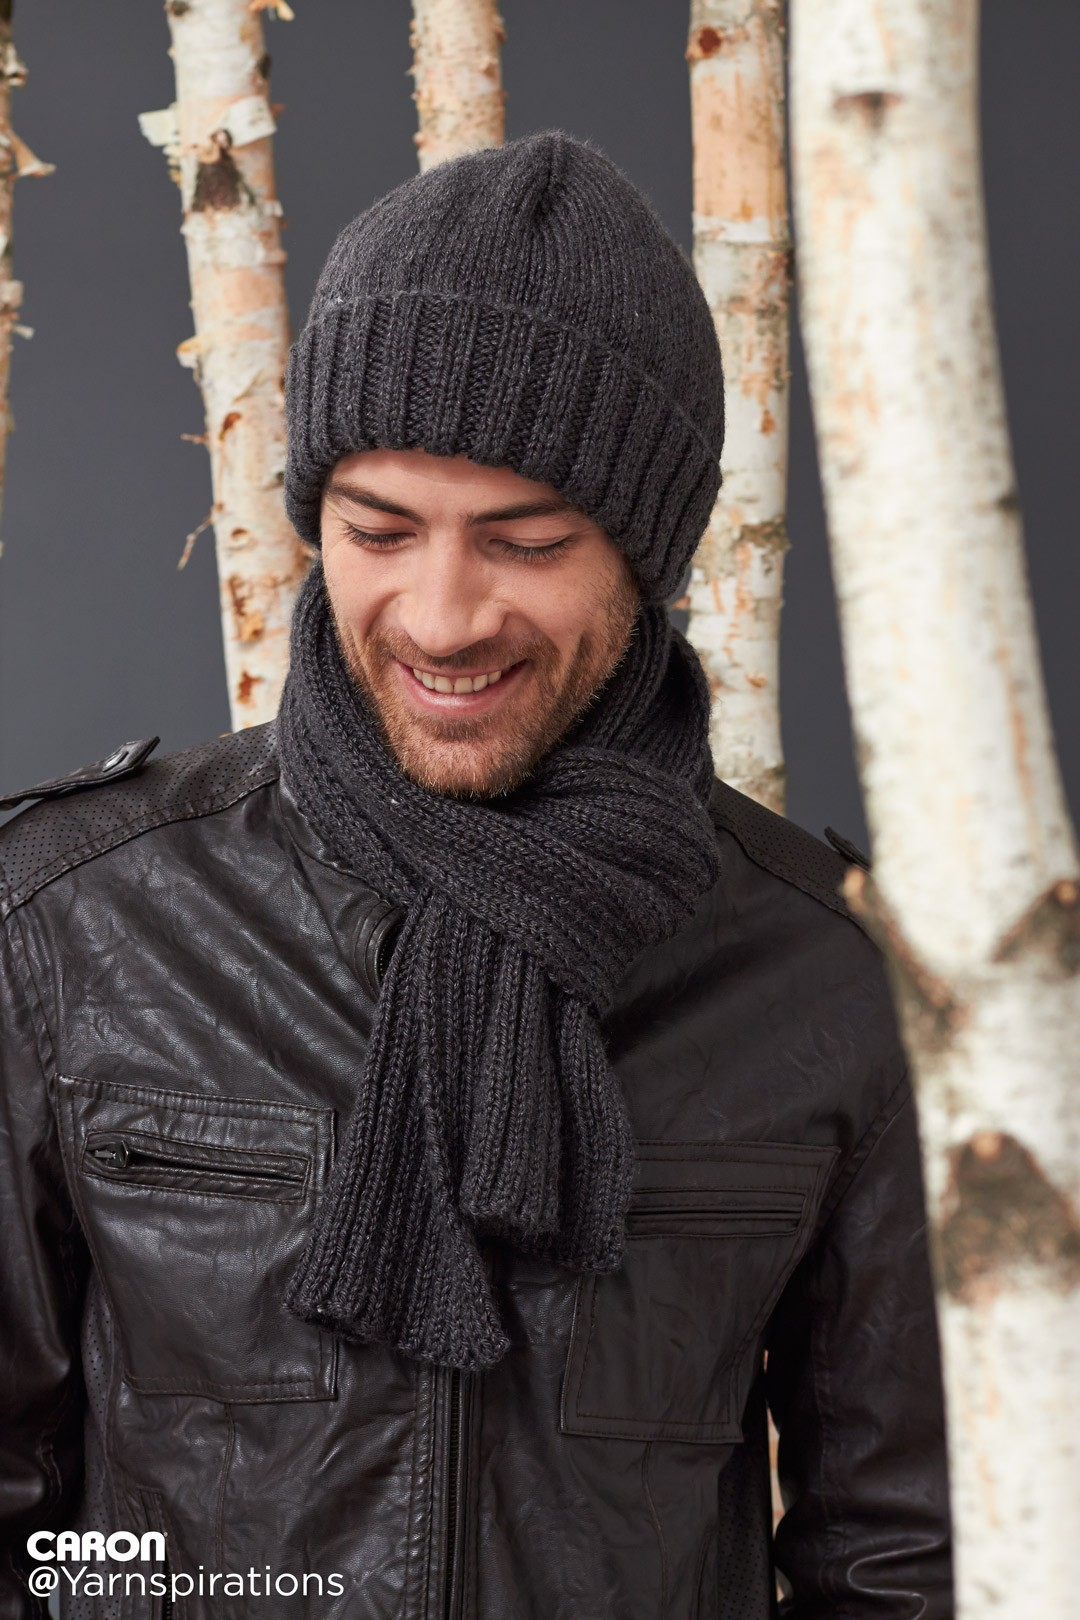 Free Knitting Pattern For Cushion Cover : Caron Mens Basic Hat and Scarf Set, Knit Pattern Yarnspirations